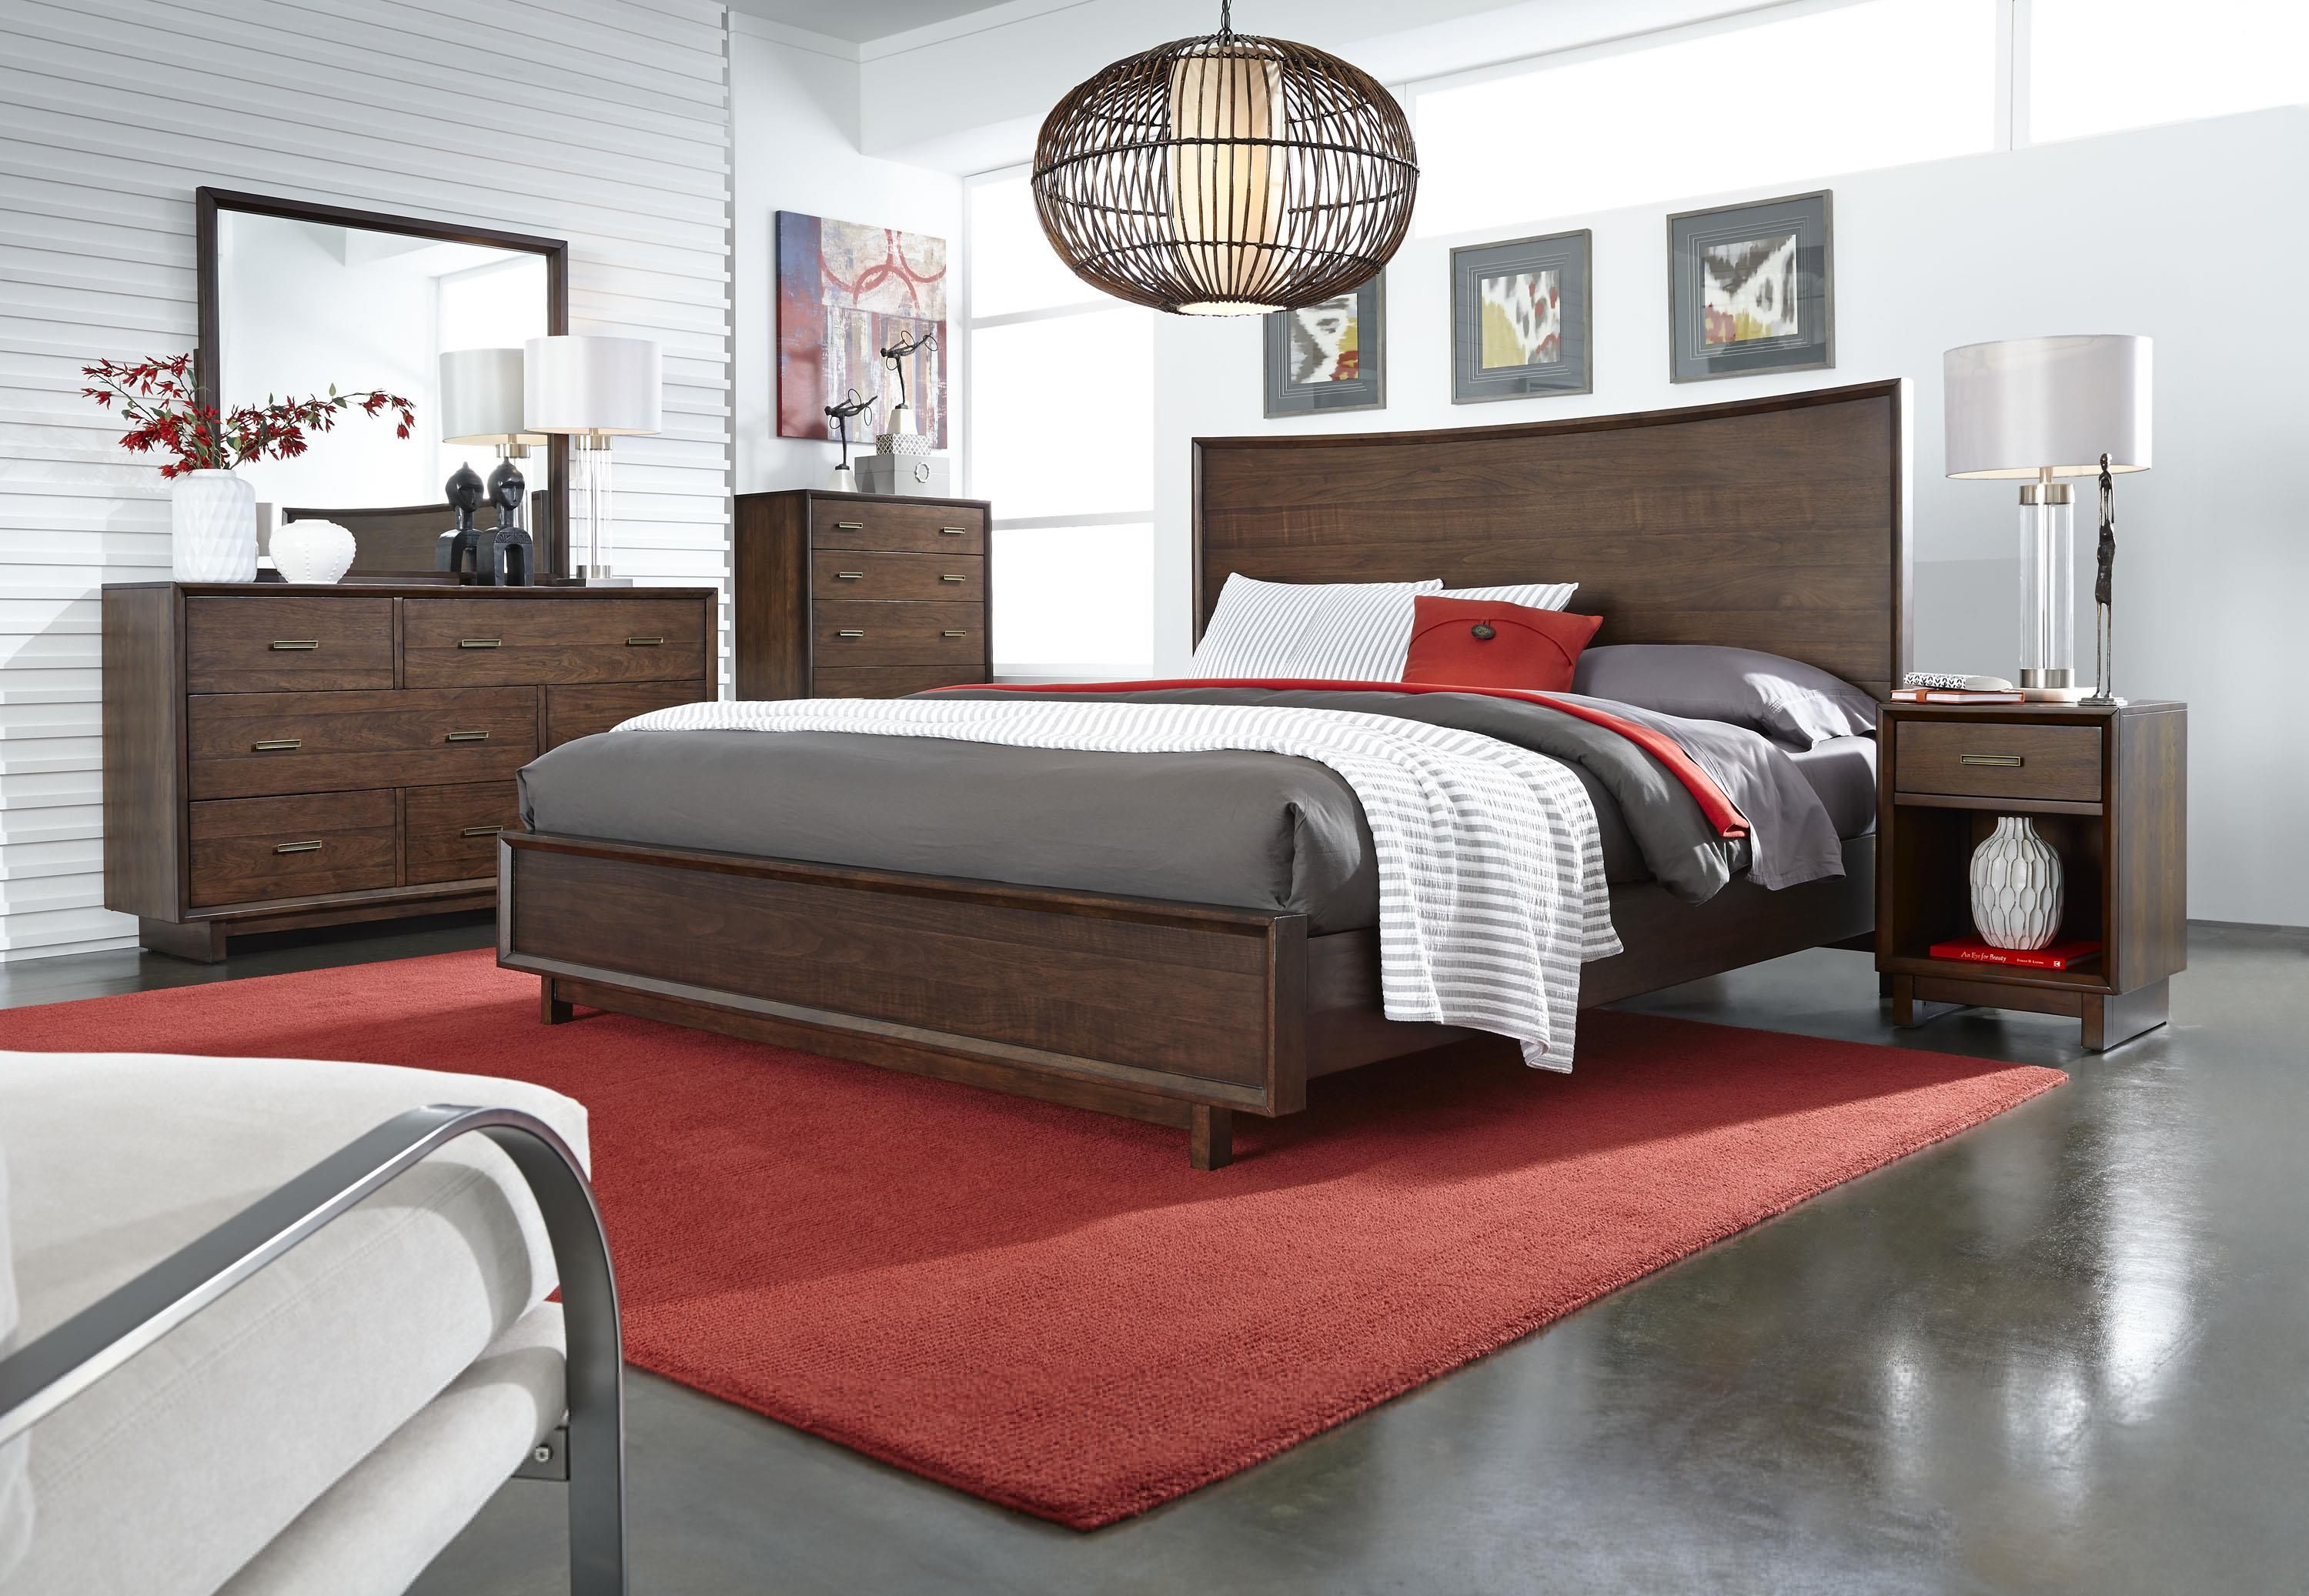 Aspenhome Walnut Heights California King Bedroom Group 3 - Item Number: IWH CK Bedroom Group 3